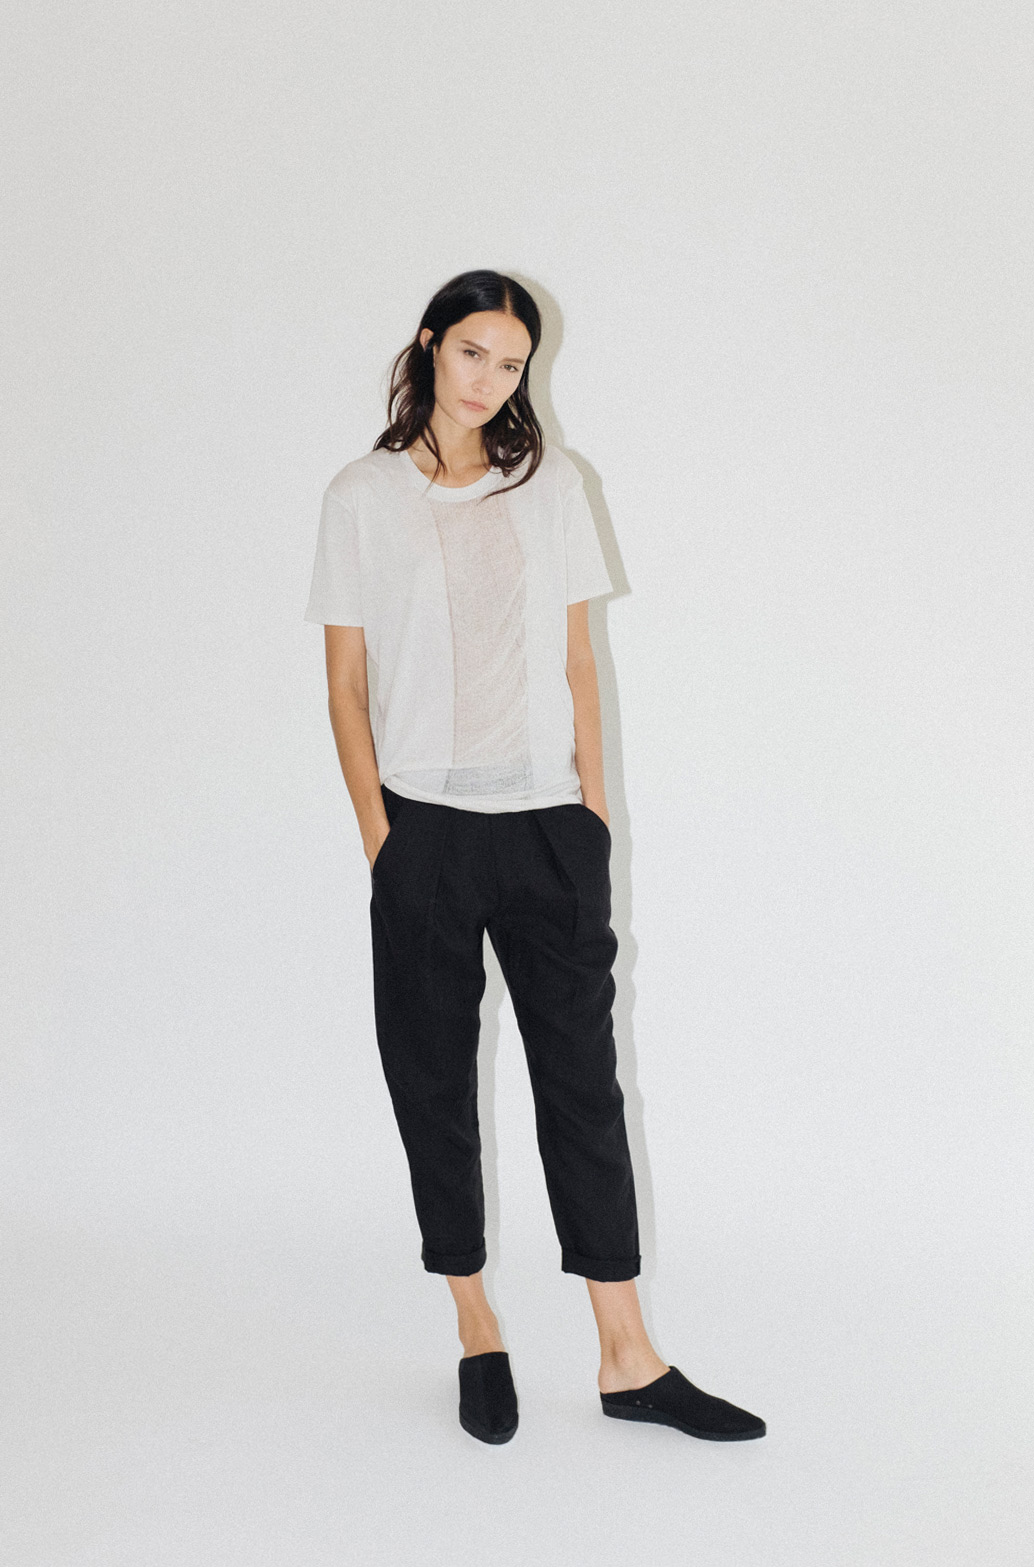 Raquel Allegra Basics via The Dreslyn